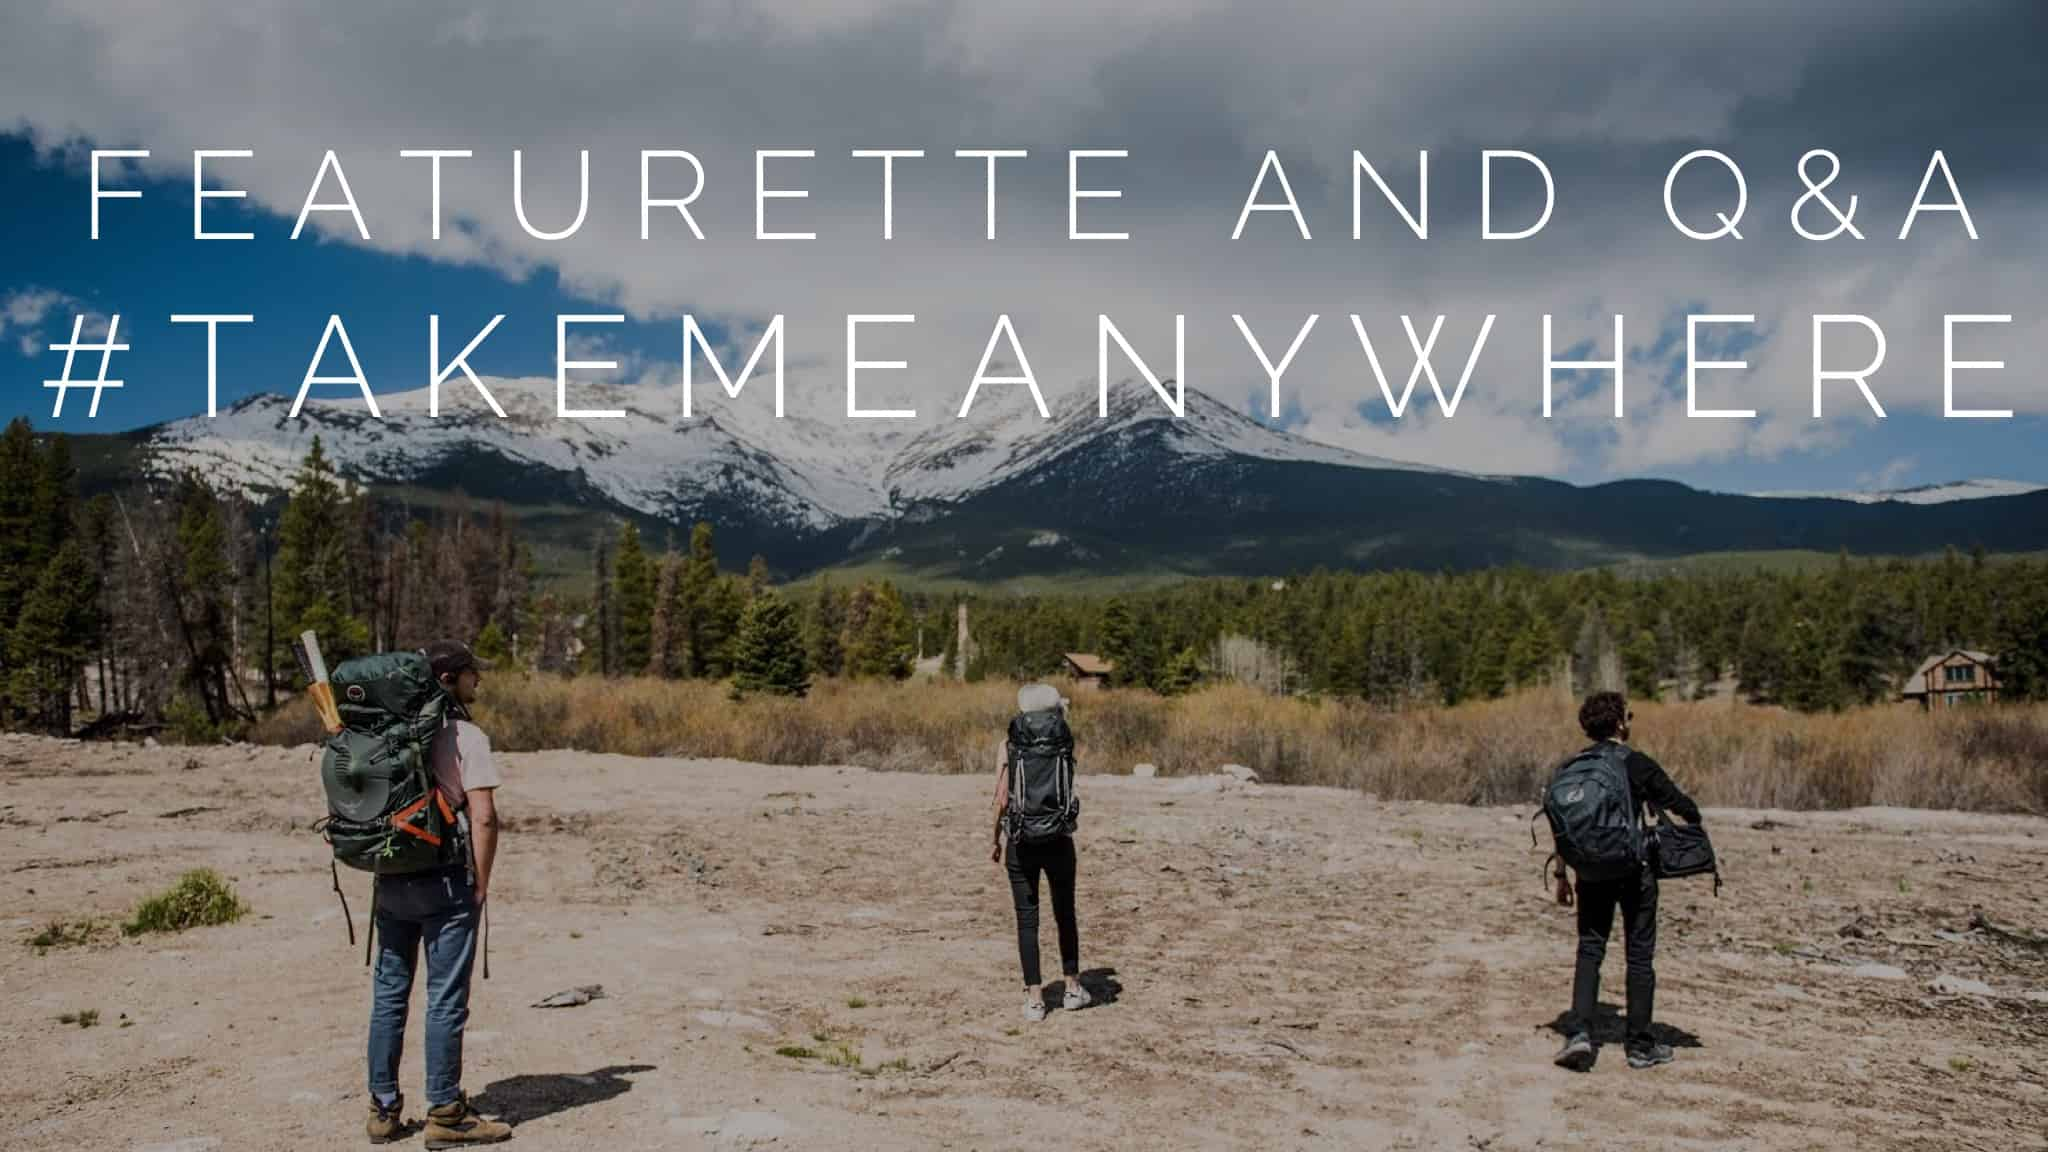 A still from #TAKEMEANYWHERE featuring Shia Labeouf, Luke Turner, and Nastja Rönkkö